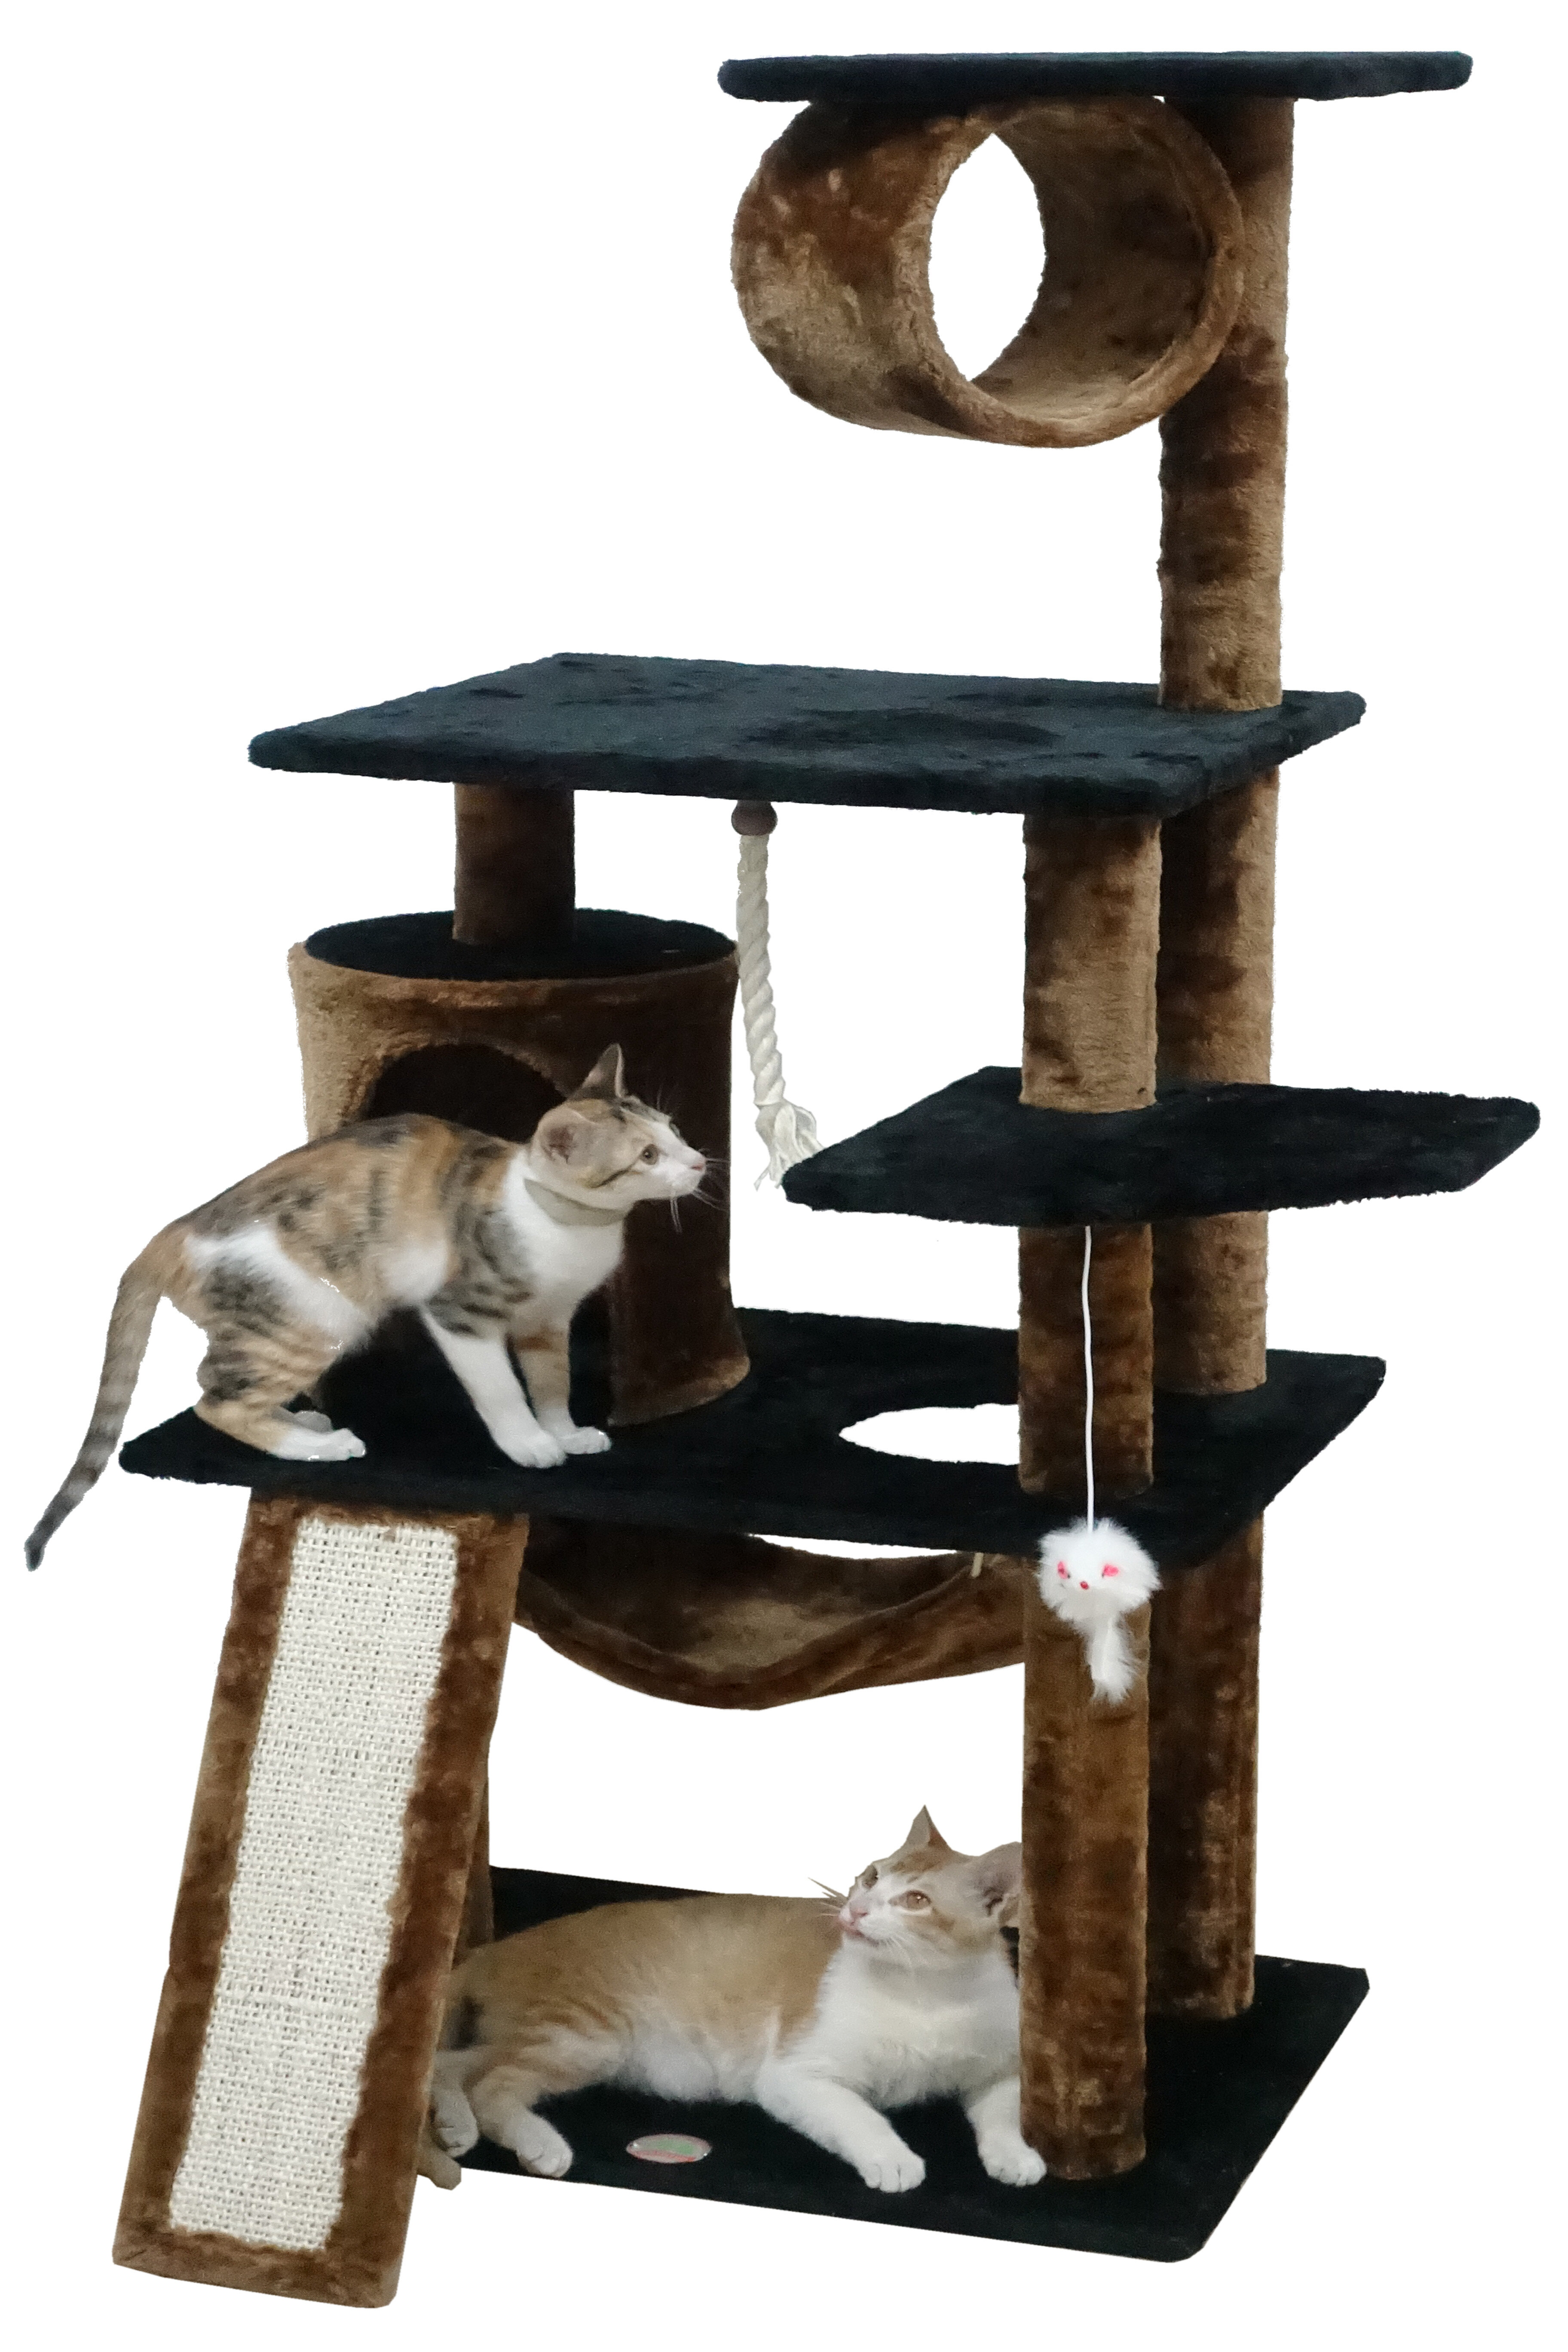 lounge product race sm racewaycat tree hammock creations web with small raceway catastrophic english fabric stretched cat